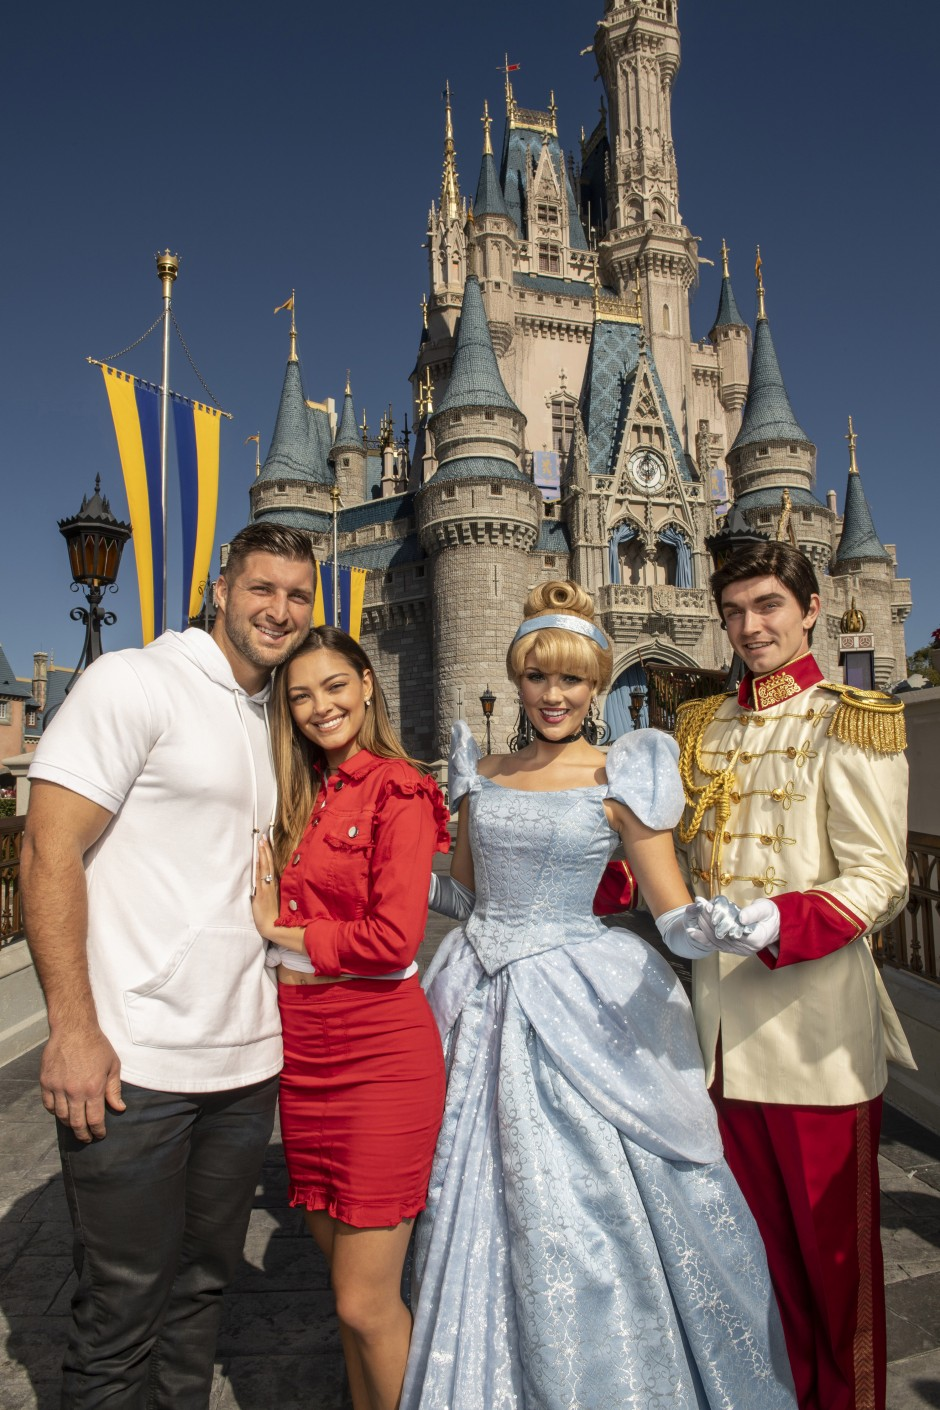 Tim Tebow Celebrity Sighting in the Magic Kingdom at Walt Disney World